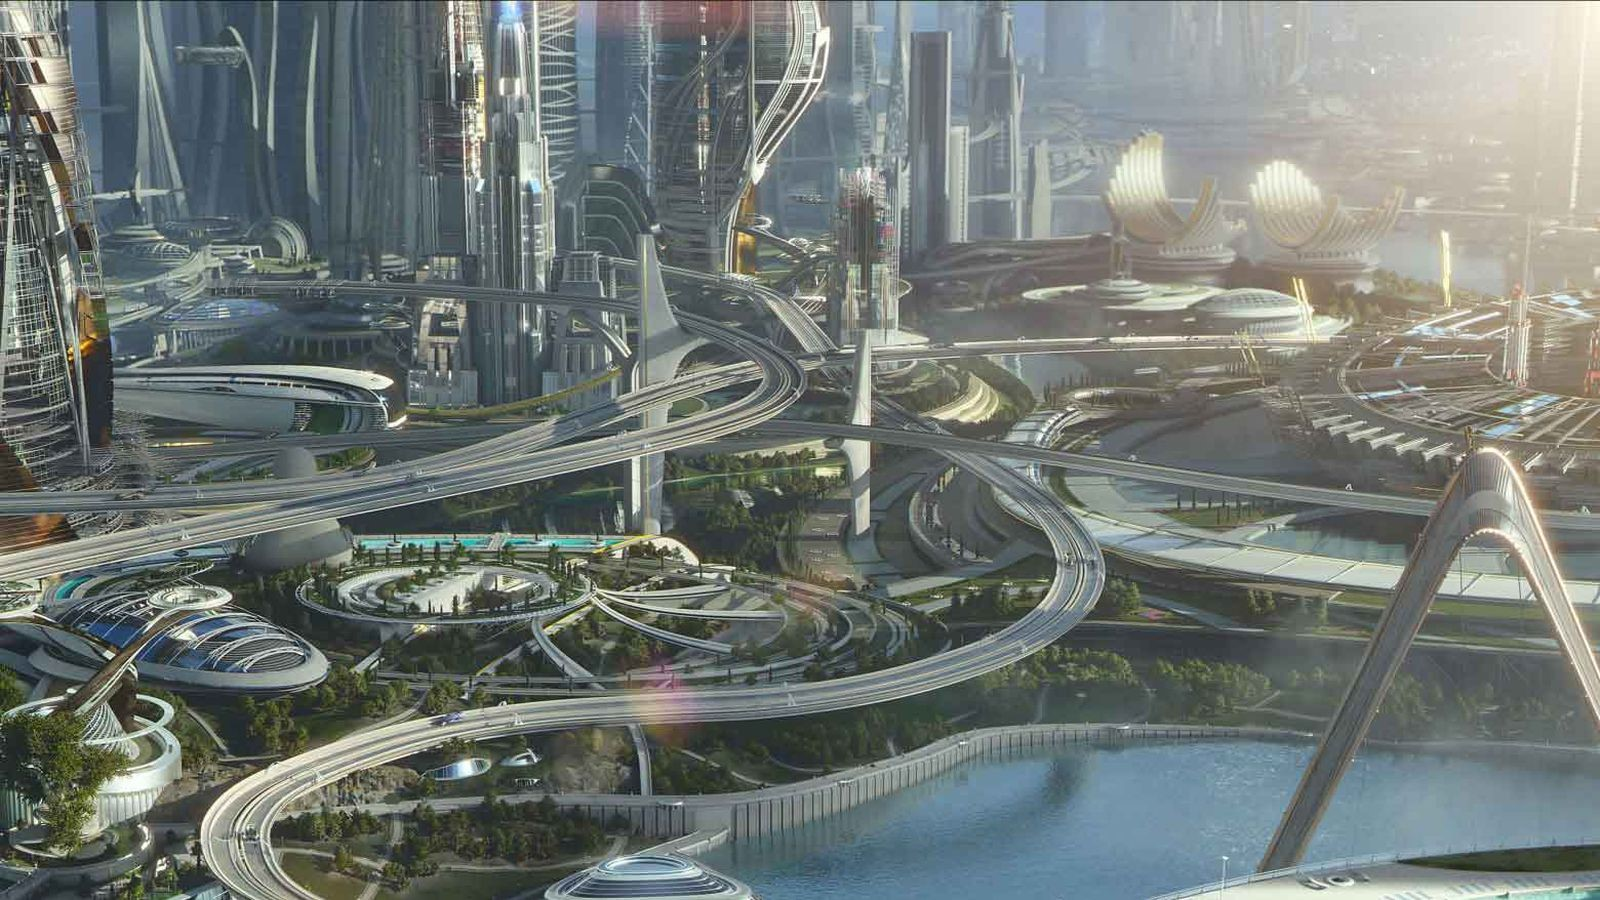 How can architecture in Sci-fi movies inspires today's architects - Sheet4